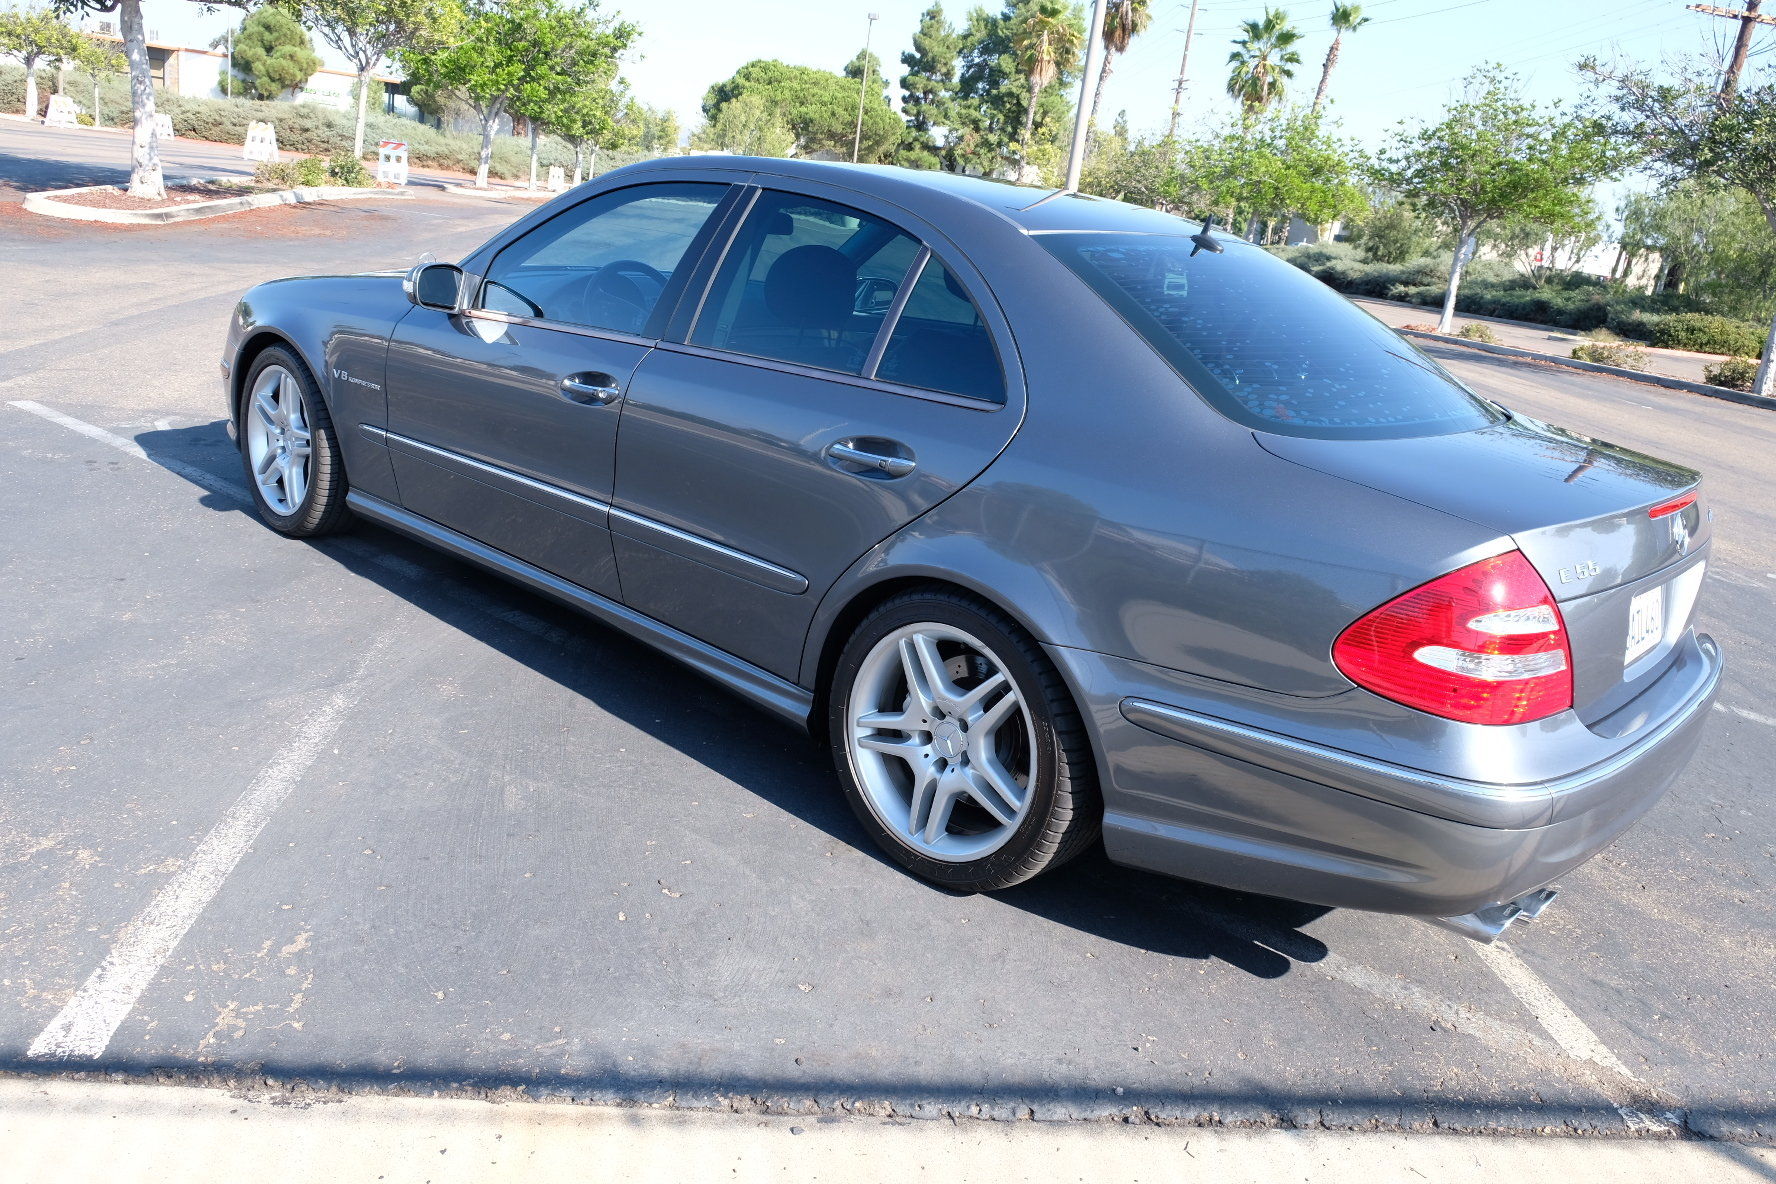 2006 Mercedes E55 AMG - 6SpeedOnline - Porsche Forum and Luxury Car